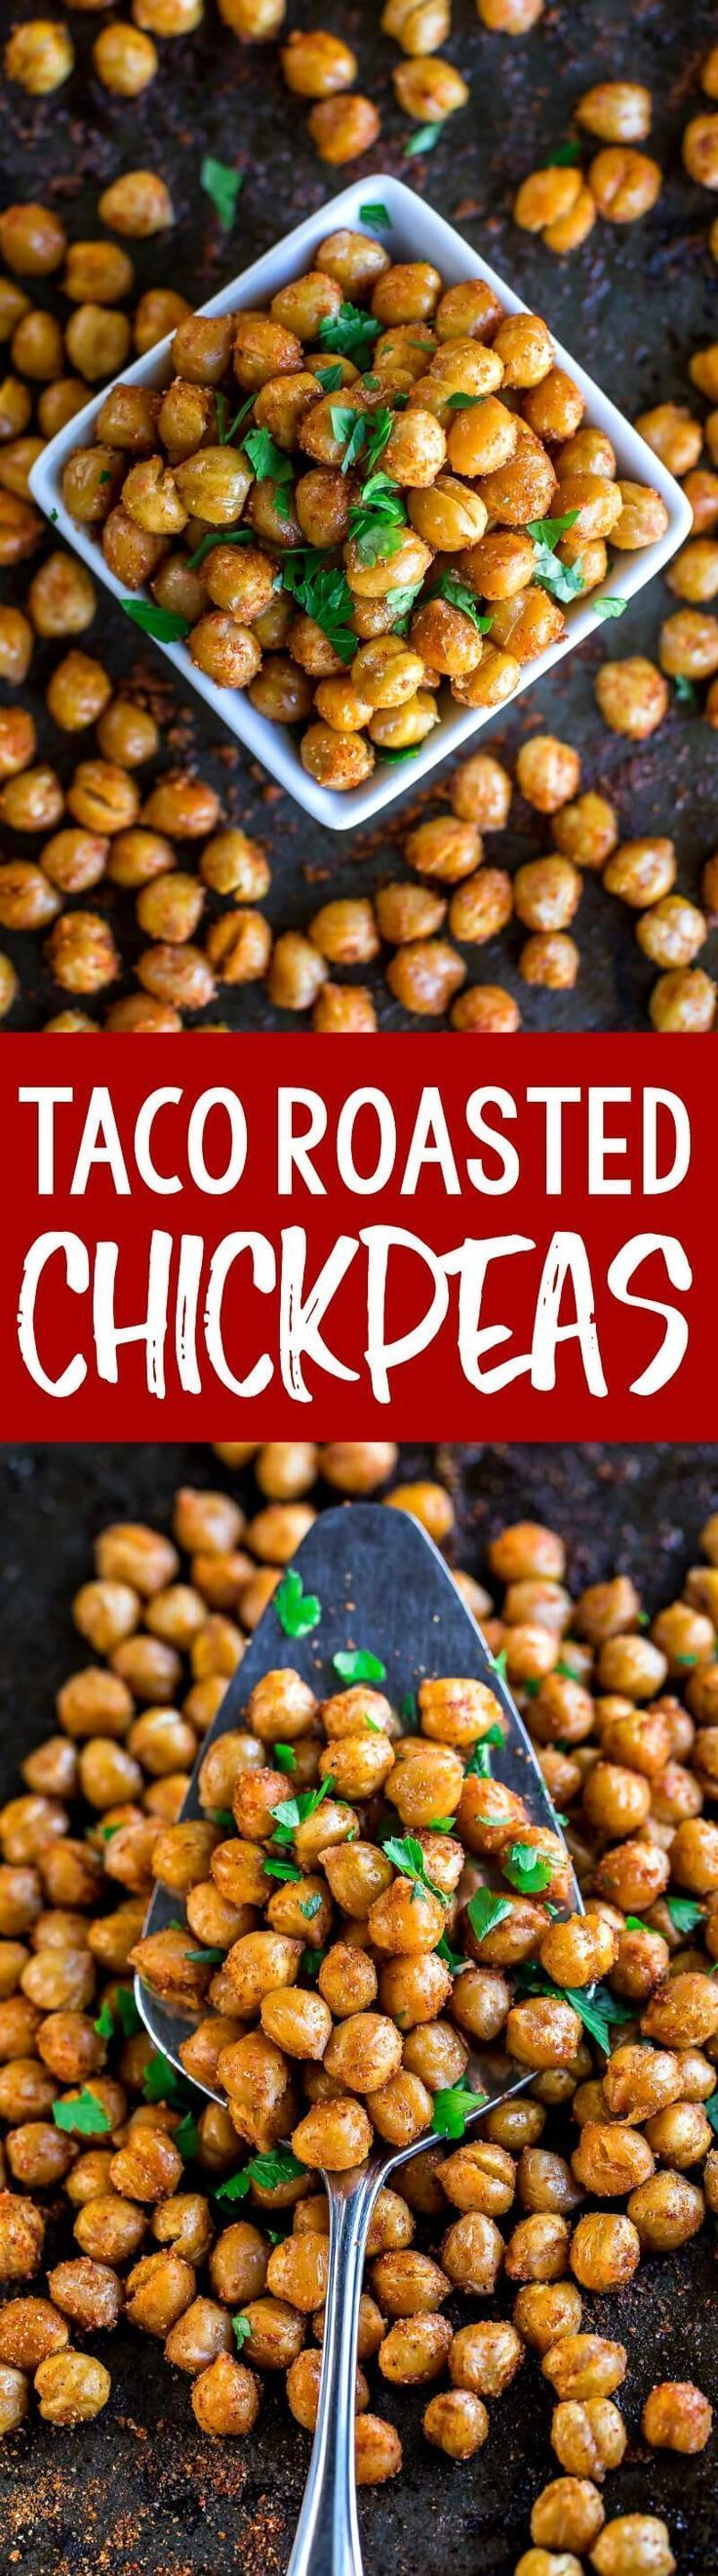 Taco Seasoned Roasted Chickpeas These Taco Seasoned Roasted Chickpeas are quick, easy, and oh-so tasty! We absolutely adore them as a salad topper or as a vegetarian taco filling!These Taco Seasoned Roasted Chickpeas are quick, easy, and oh-so tasty! We absolutely adore them as a salad topper or as a vegetarian taco filling!